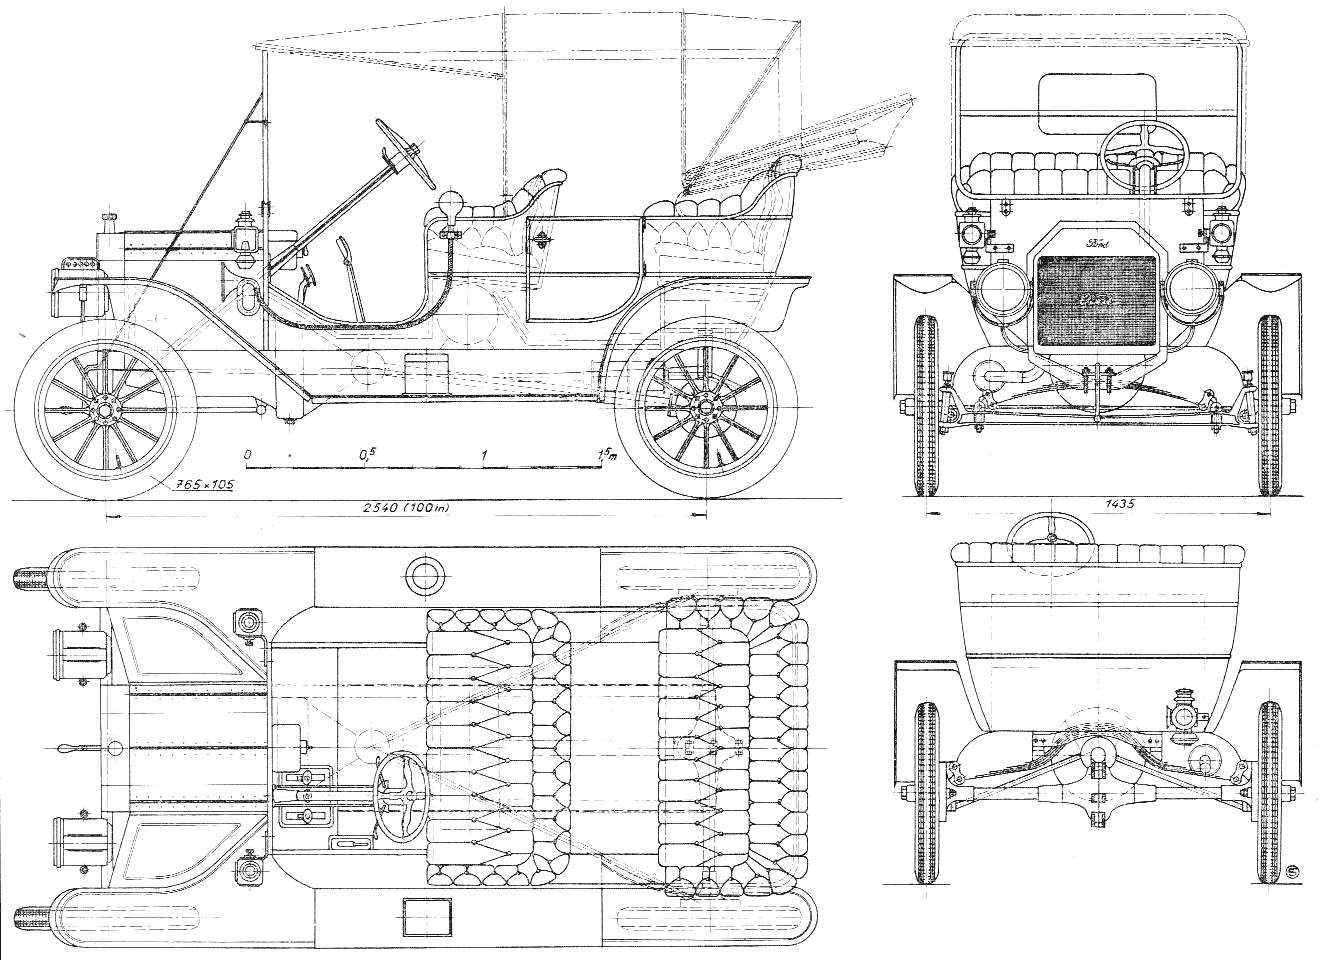 Model T Engine Schematic Circuit Connection Diagram \u2022 1920s Products  1920 Model T Motor Diagram